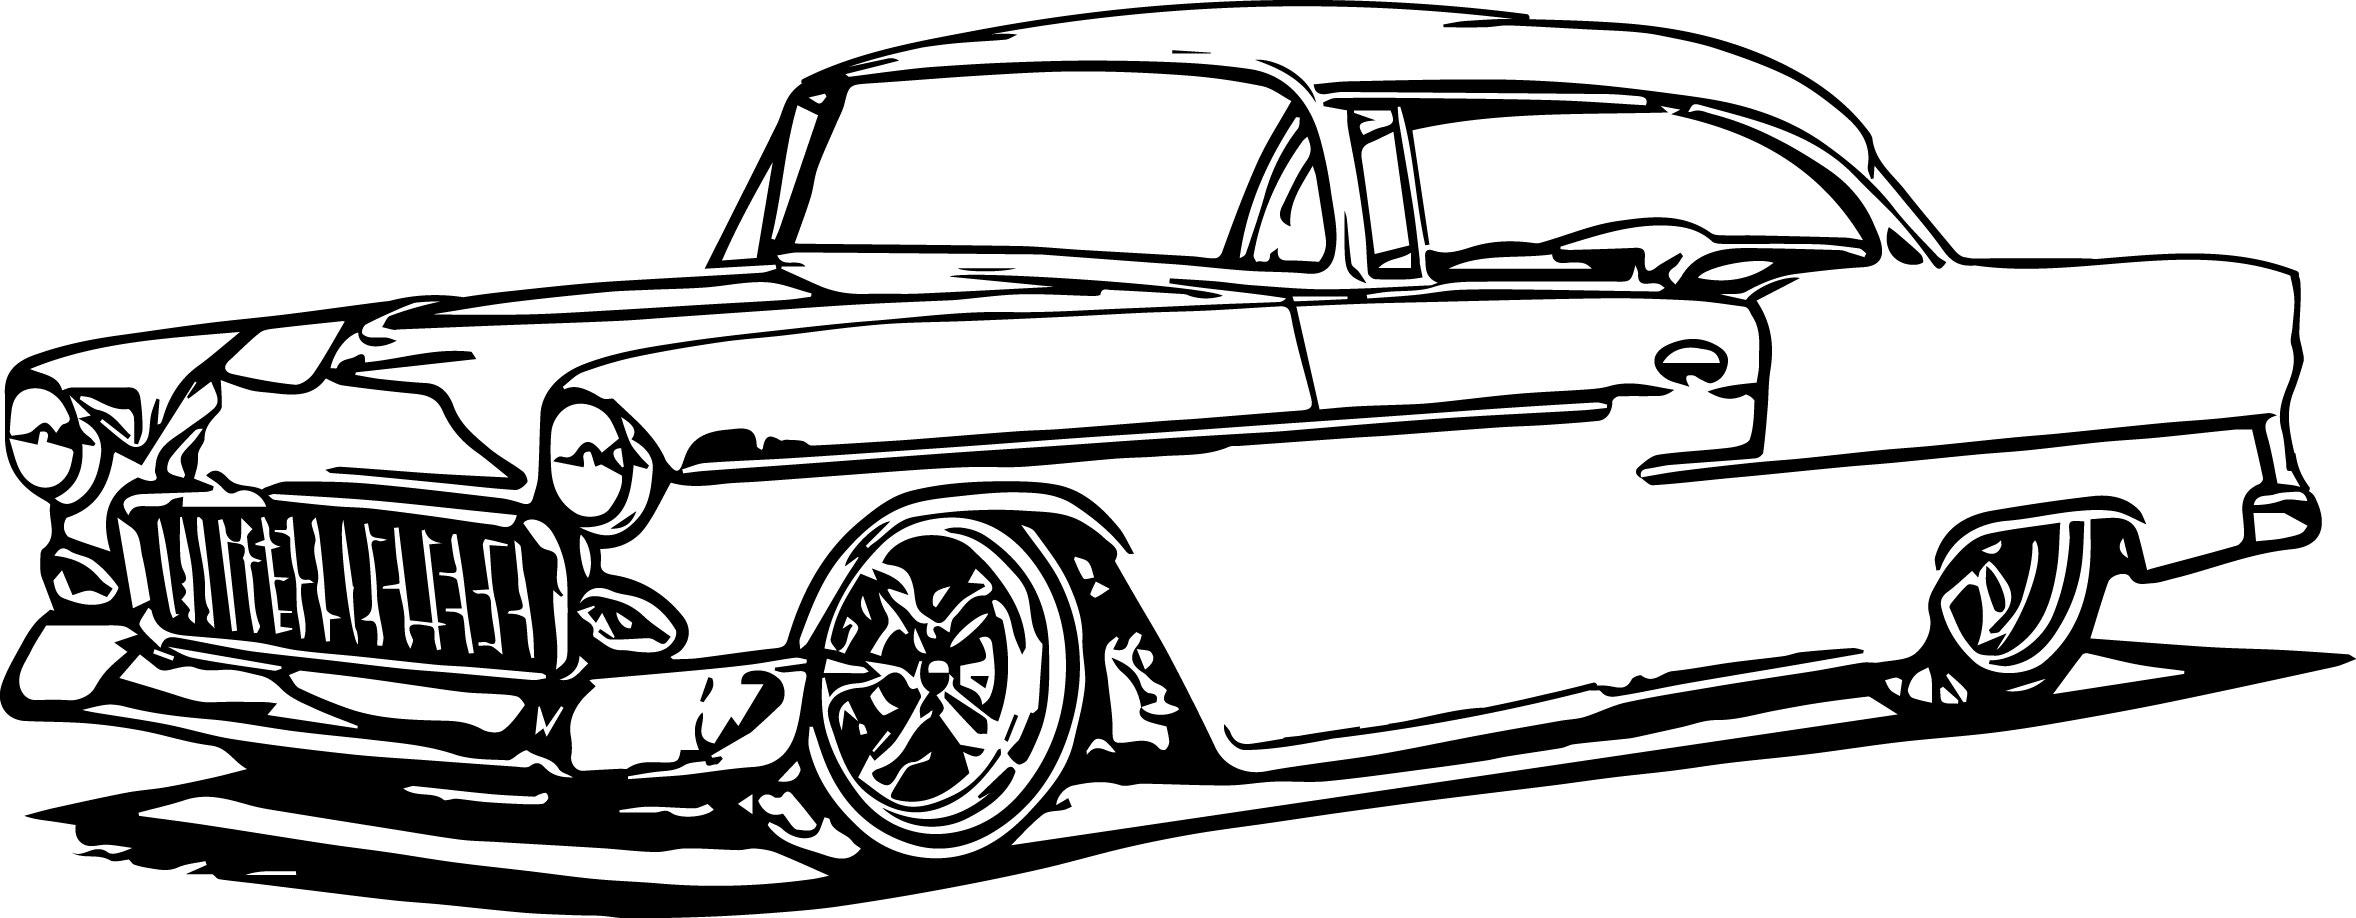 Antique cars coloring pages - Antique Car Coloring Pages